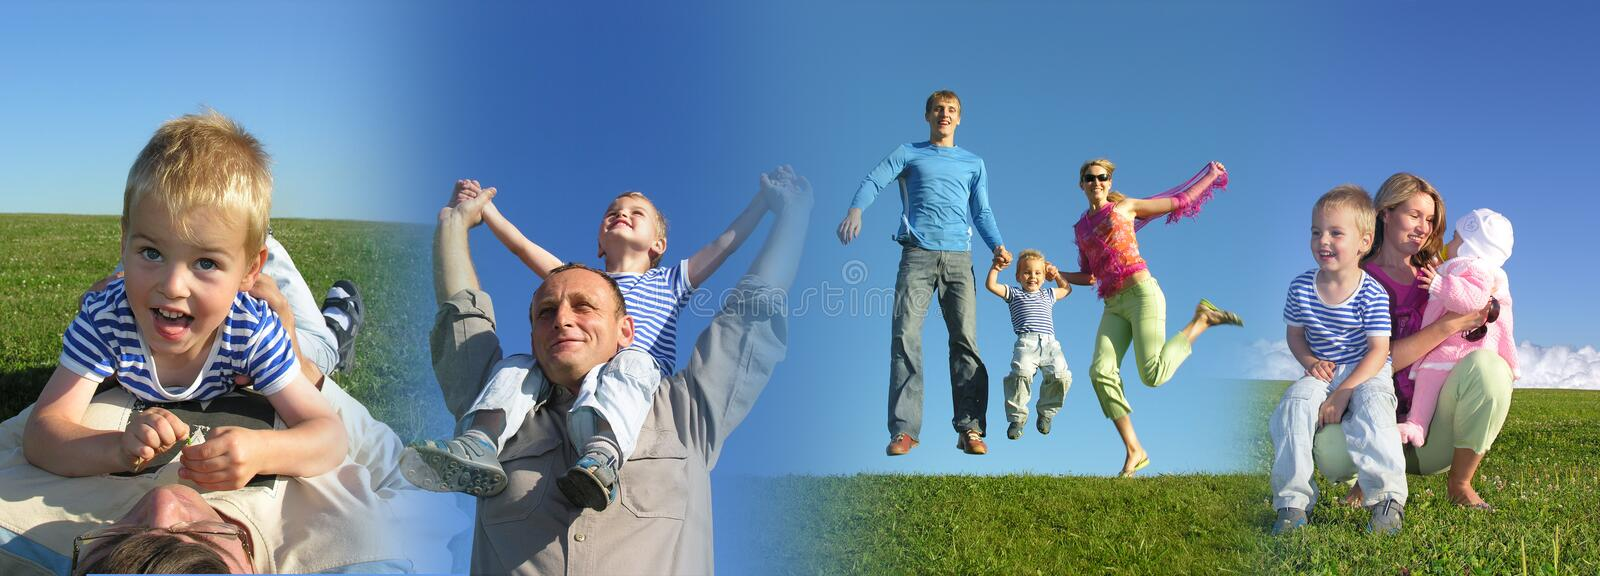 Family assembling 2 royalty free stock image